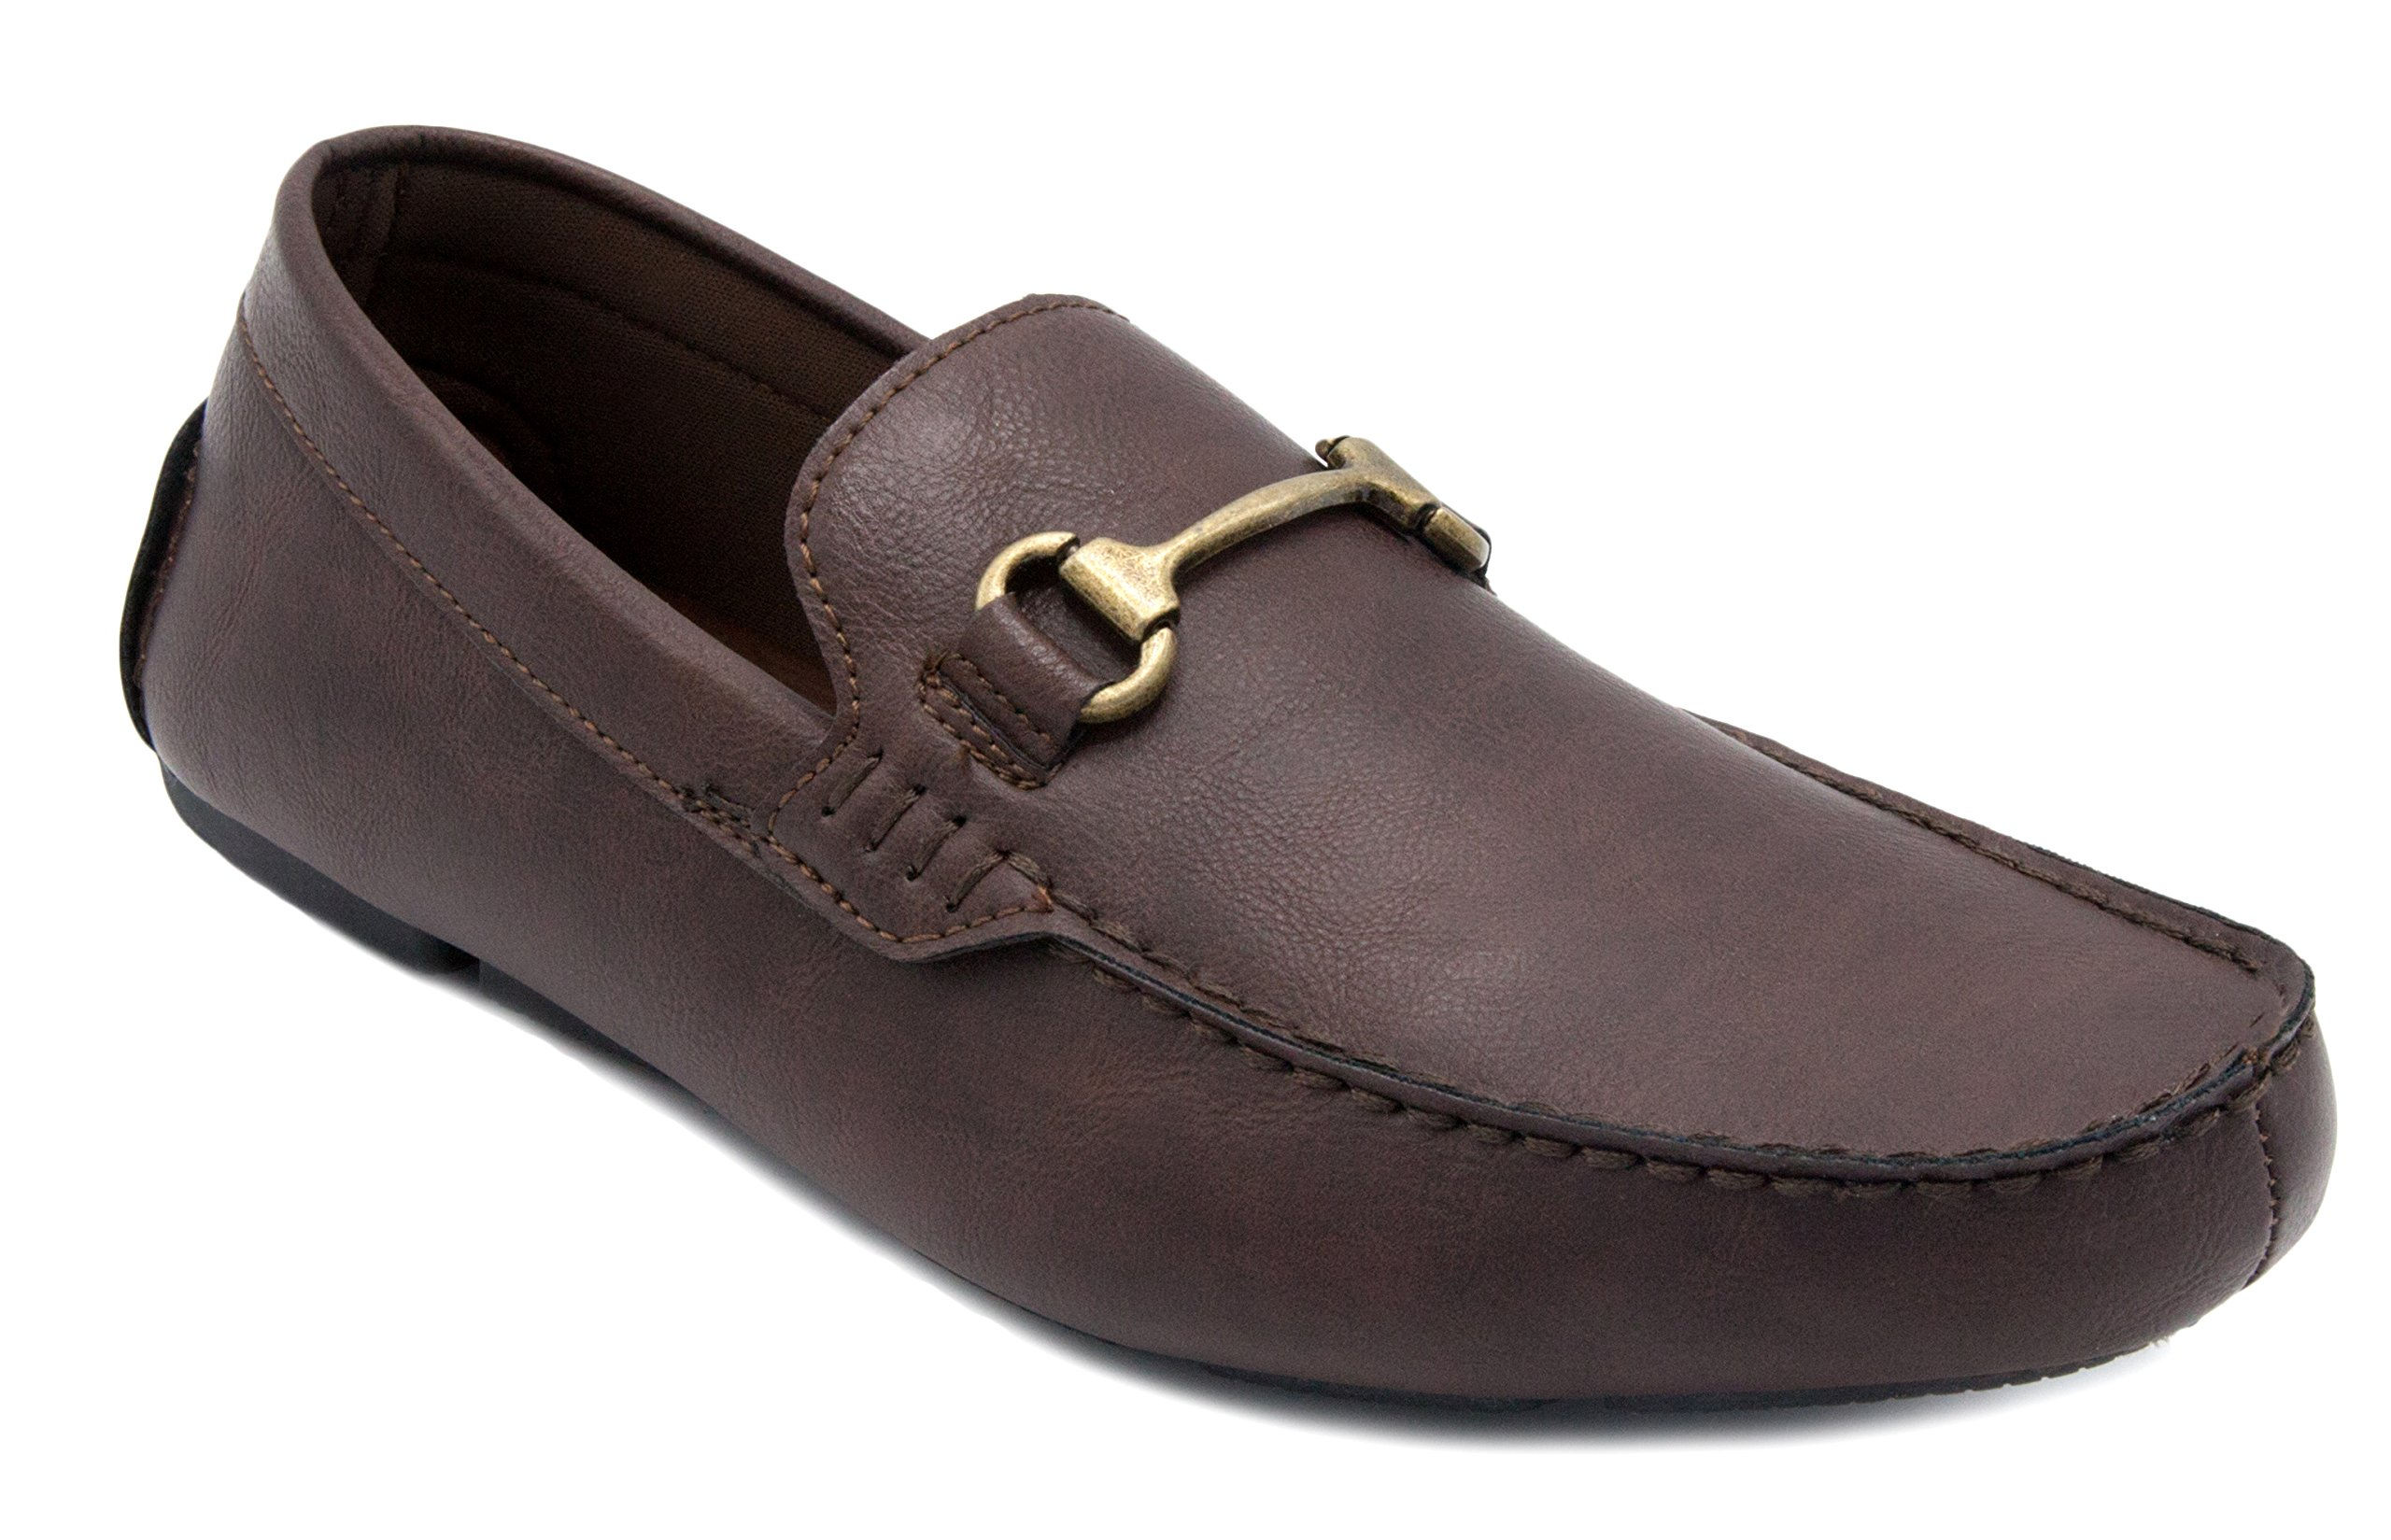 London Fog Mens Fairford Driving Moccasin Loafers Brown 8